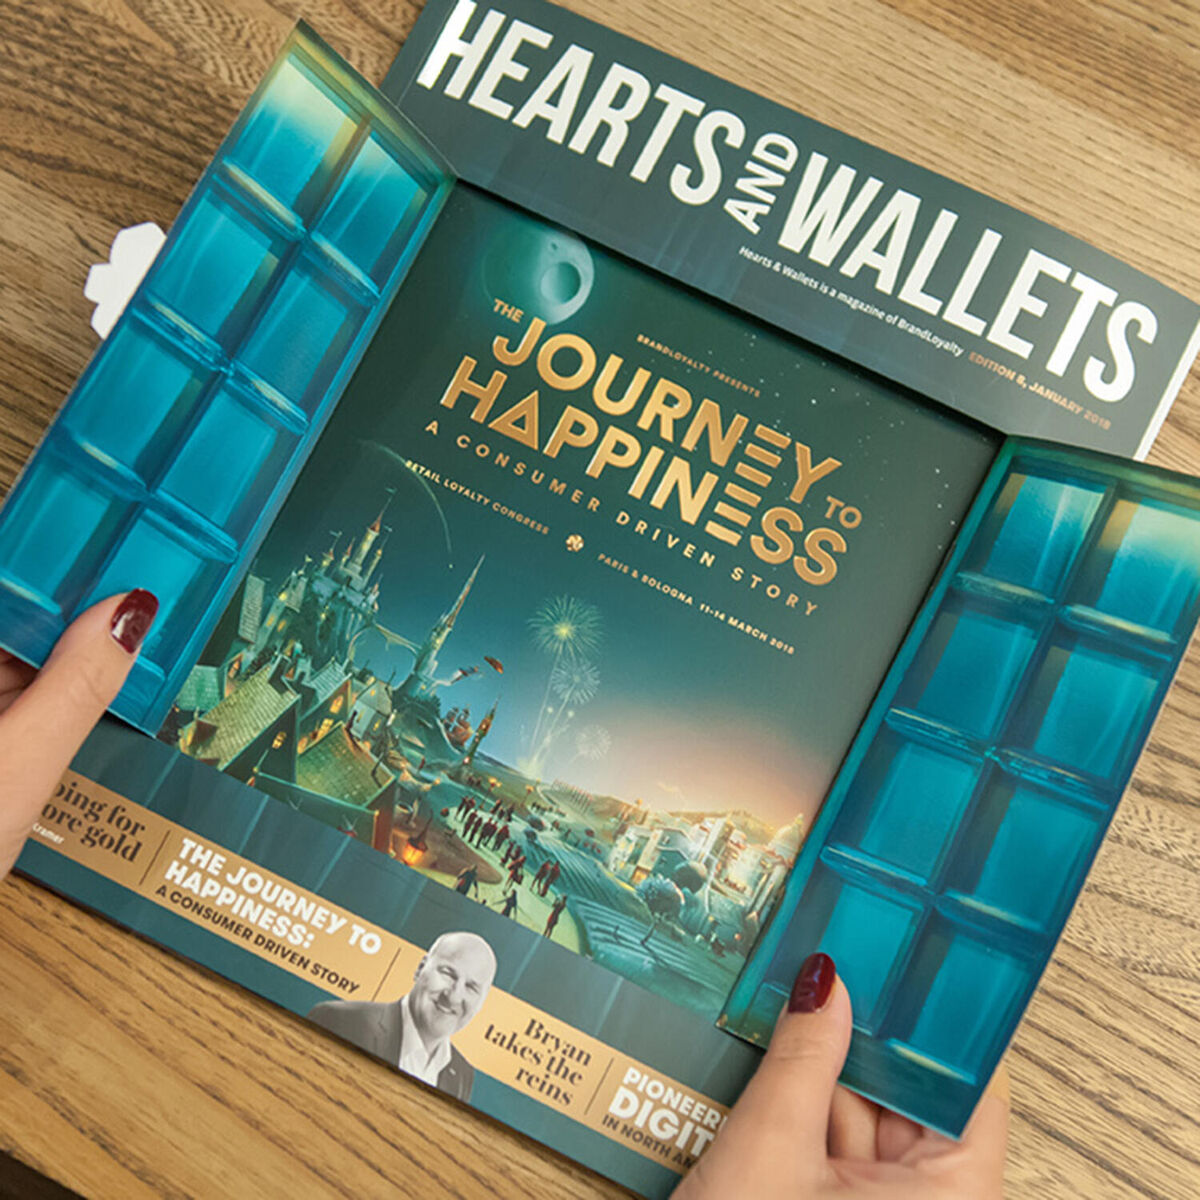 Read more articles from Hearts & Wallets